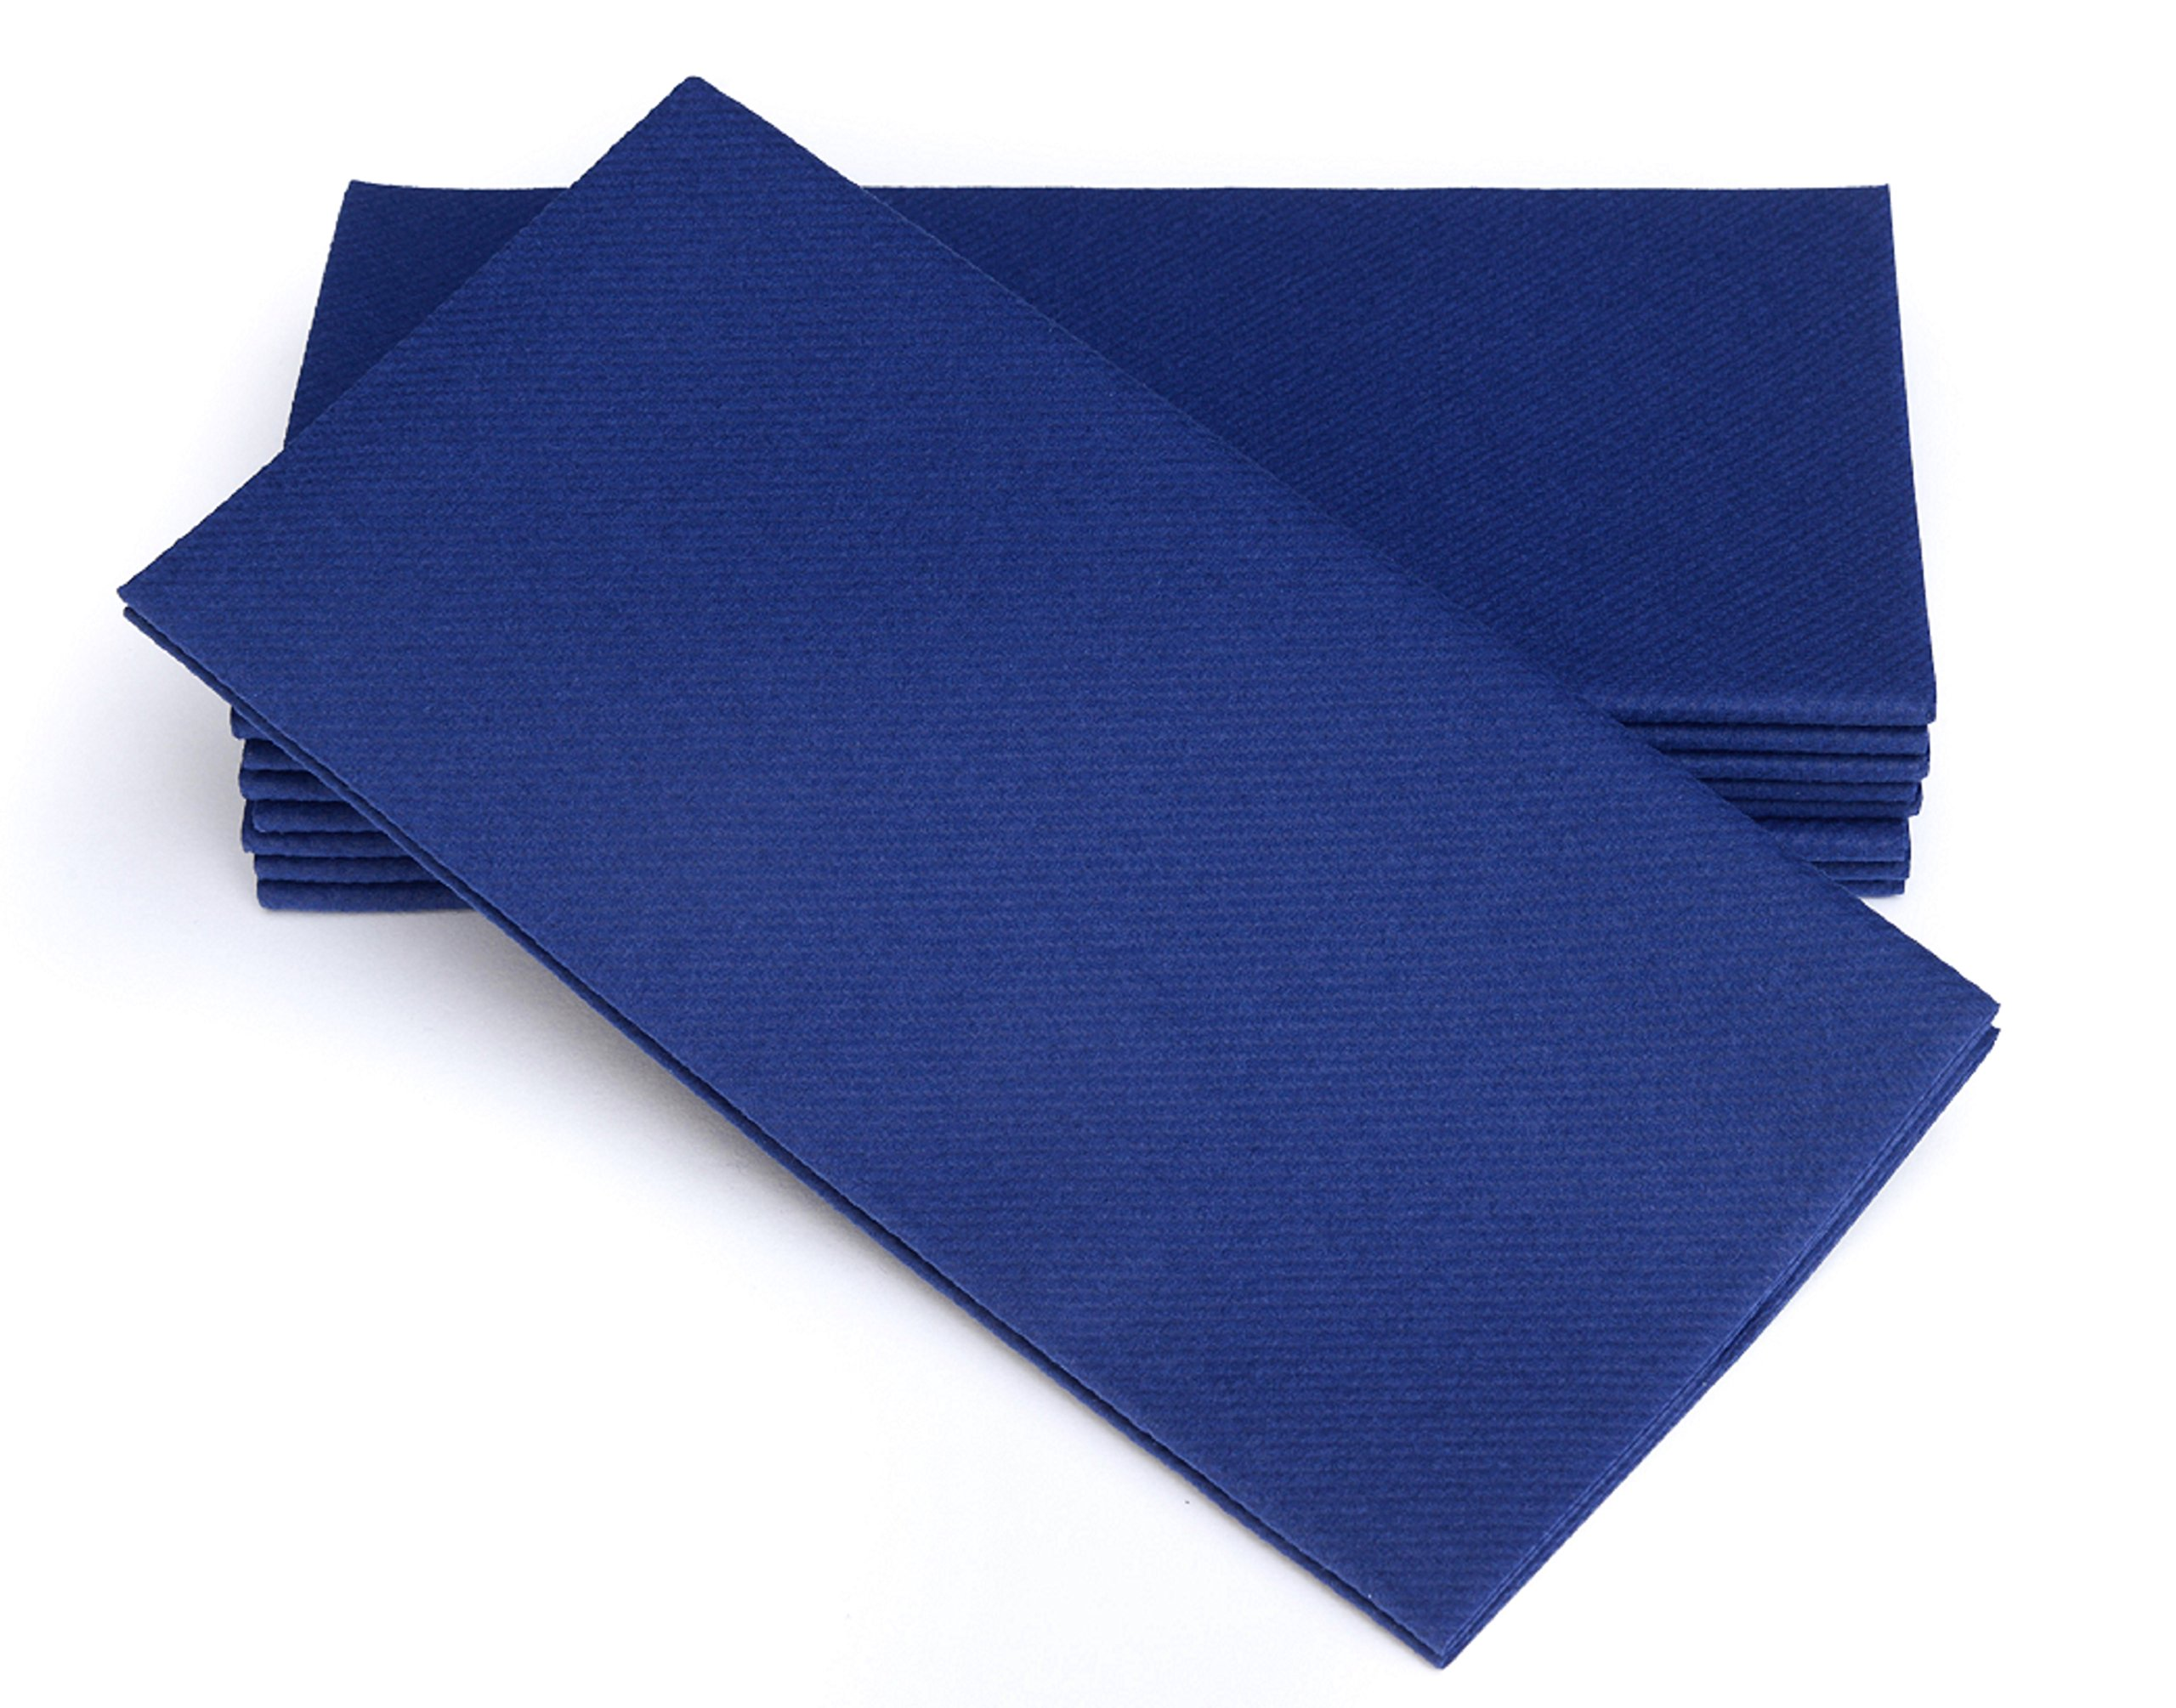 """Simulinen Dinner Napkins – Disposable, Blue, Cloth-Like – Elegant, Yet Heavy Duty Soft, Absorbent & Durable – 16""""x16"""" – Box of 50"""